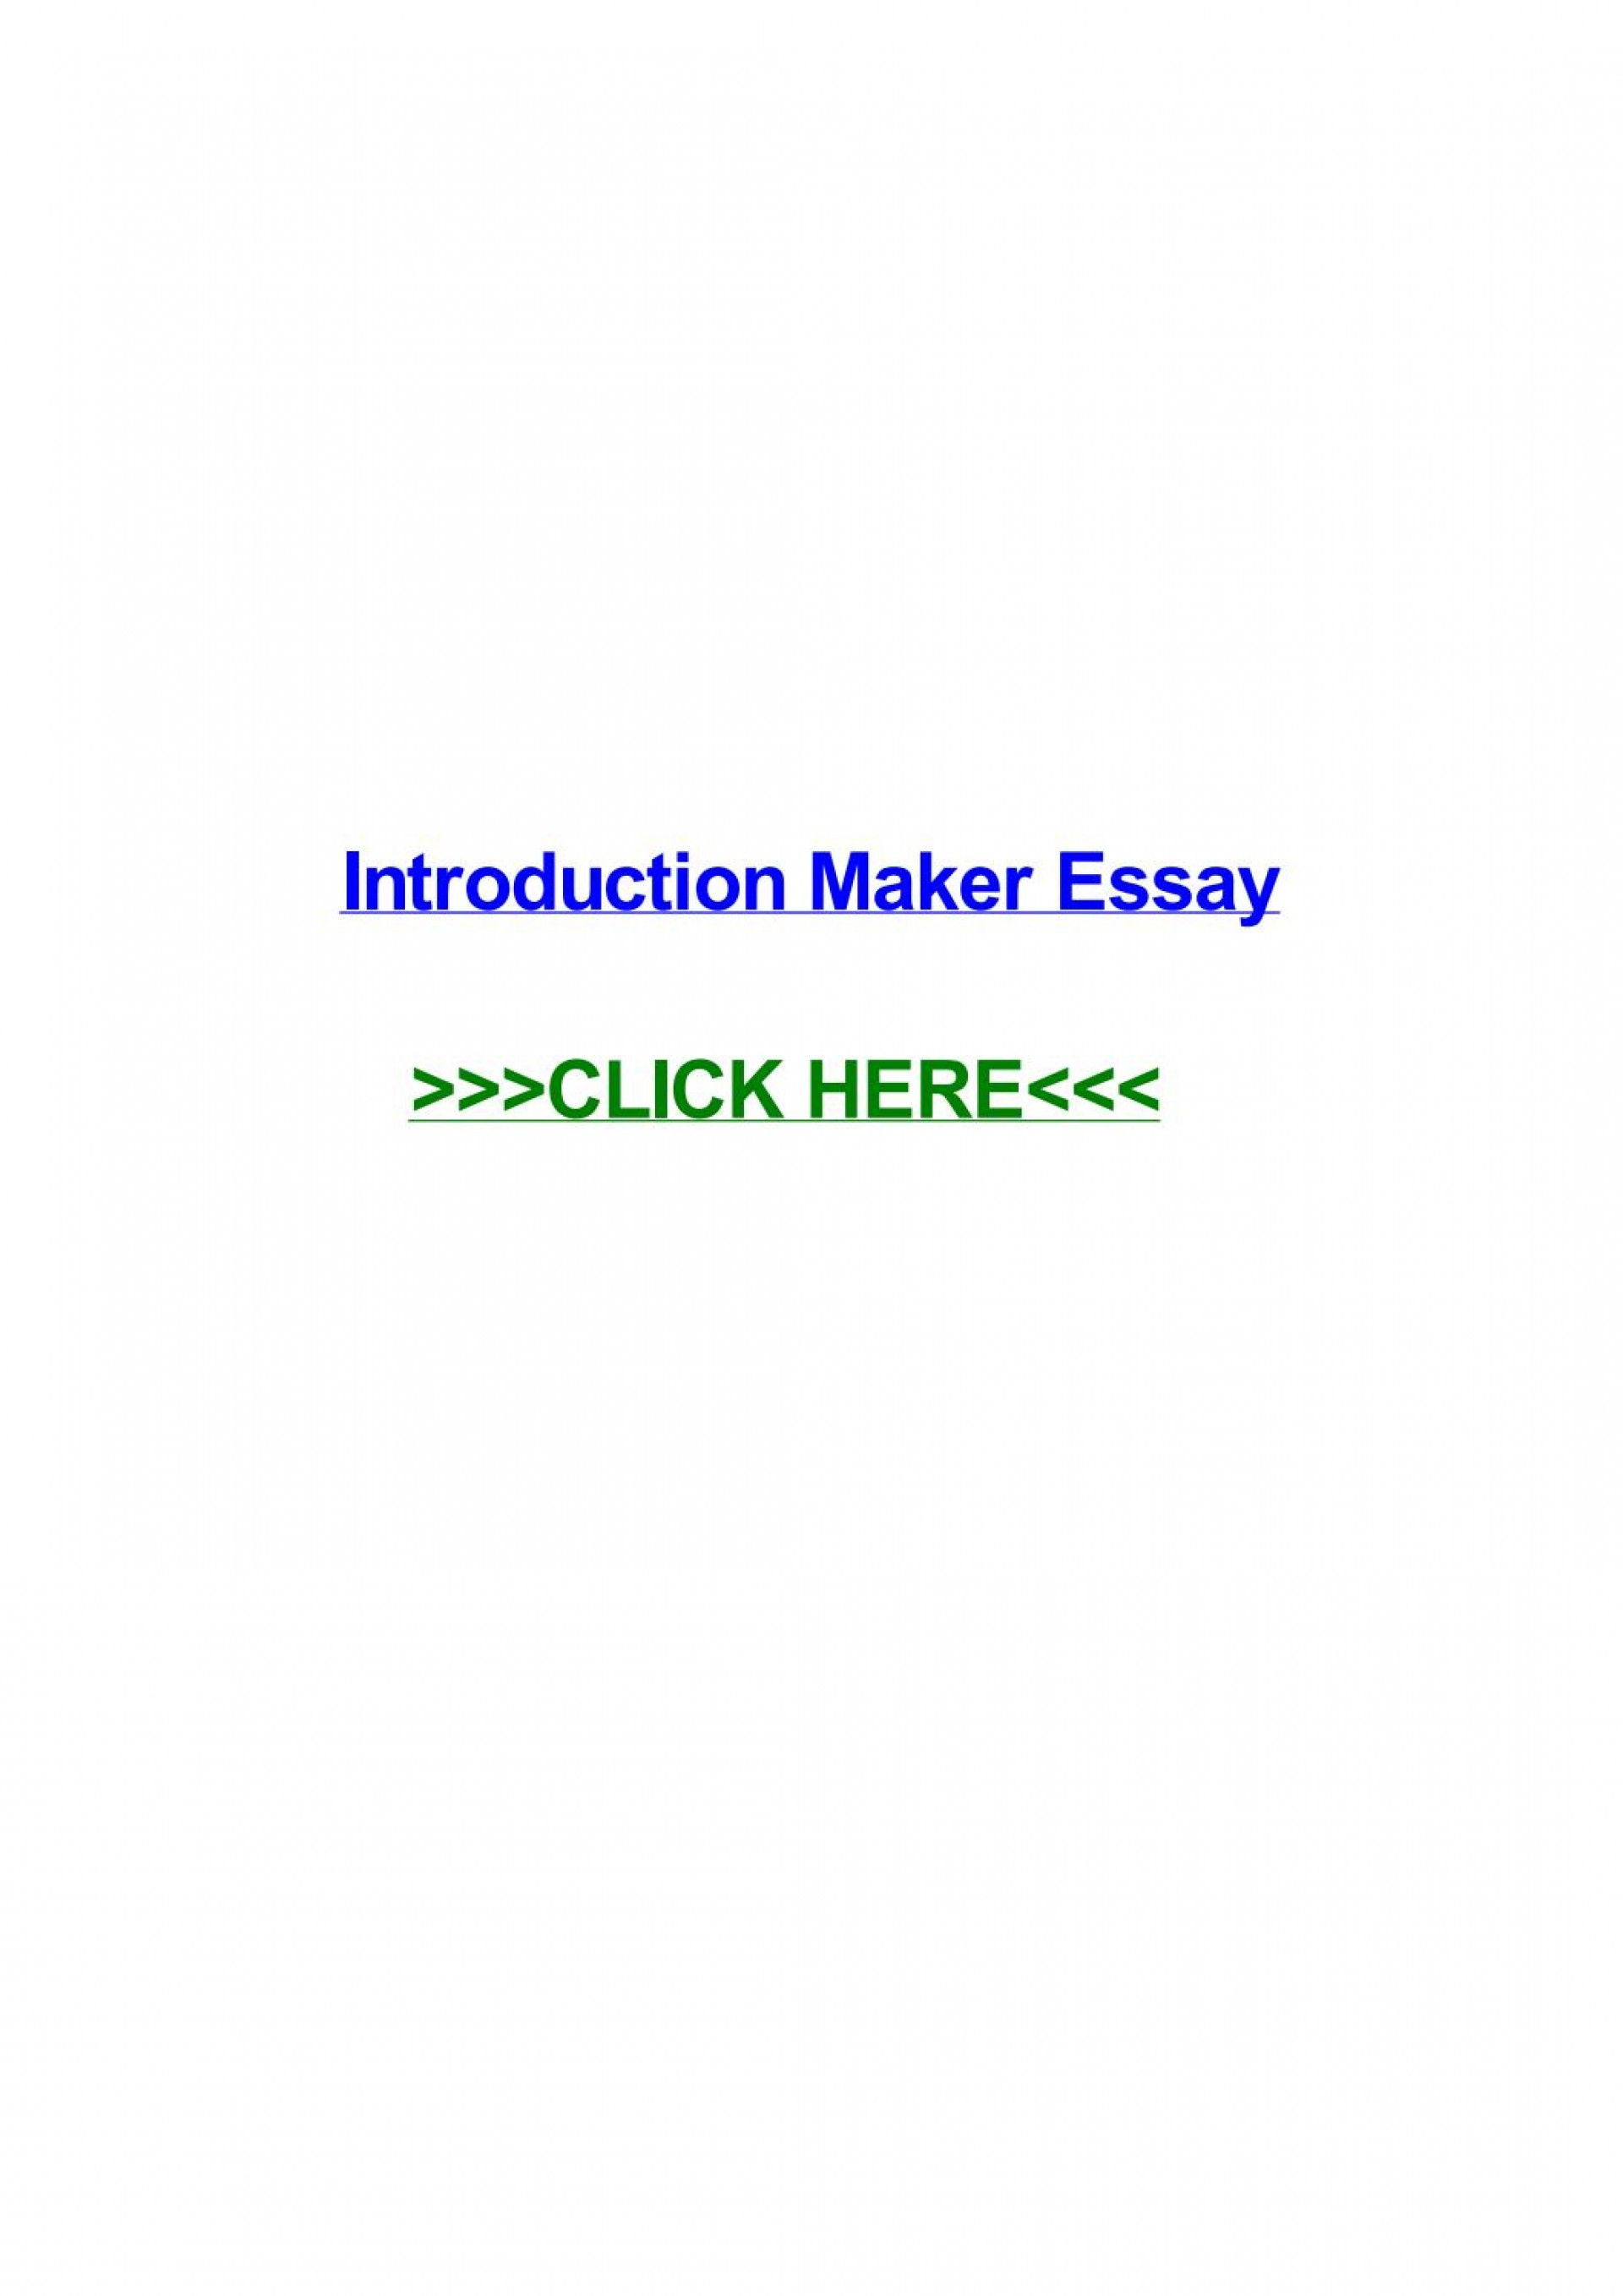 008 Conclusion Maker For Essays Page 1 Essay Staggering 1920